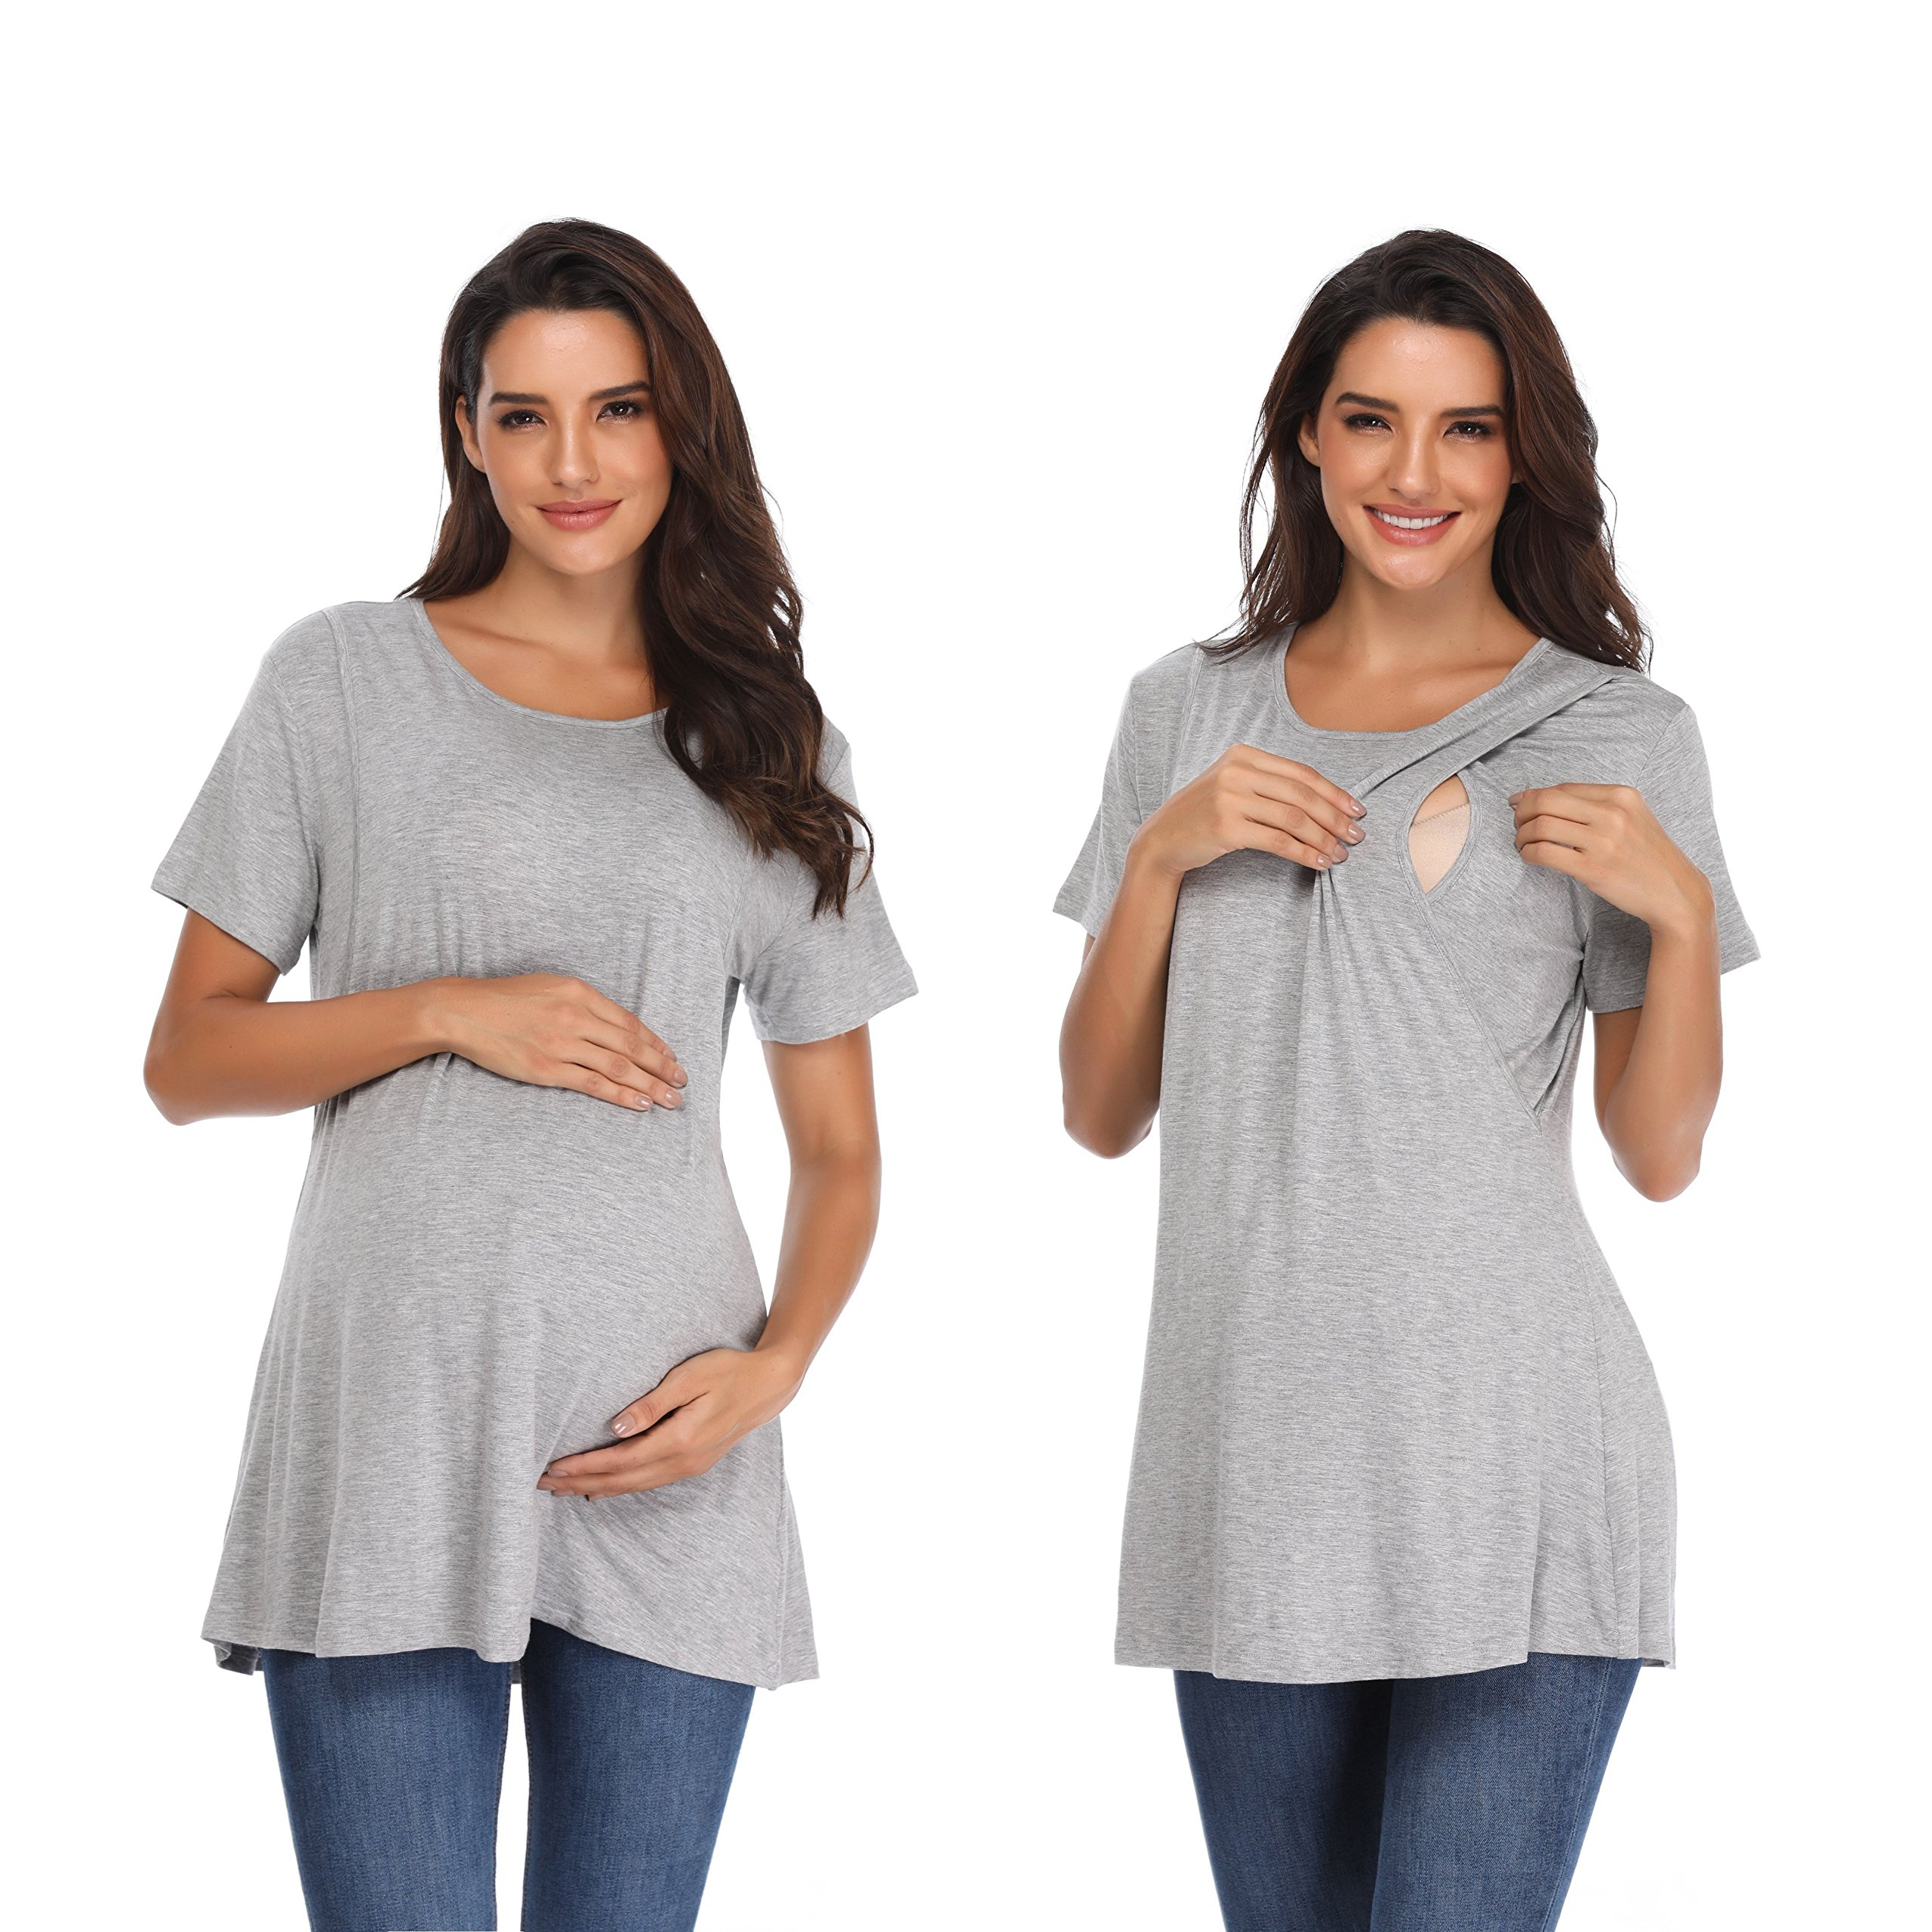 Memory baby Women's Cotton Crew Neck Solid Short Sleeve Maternity T-Shirt Top Gray XL